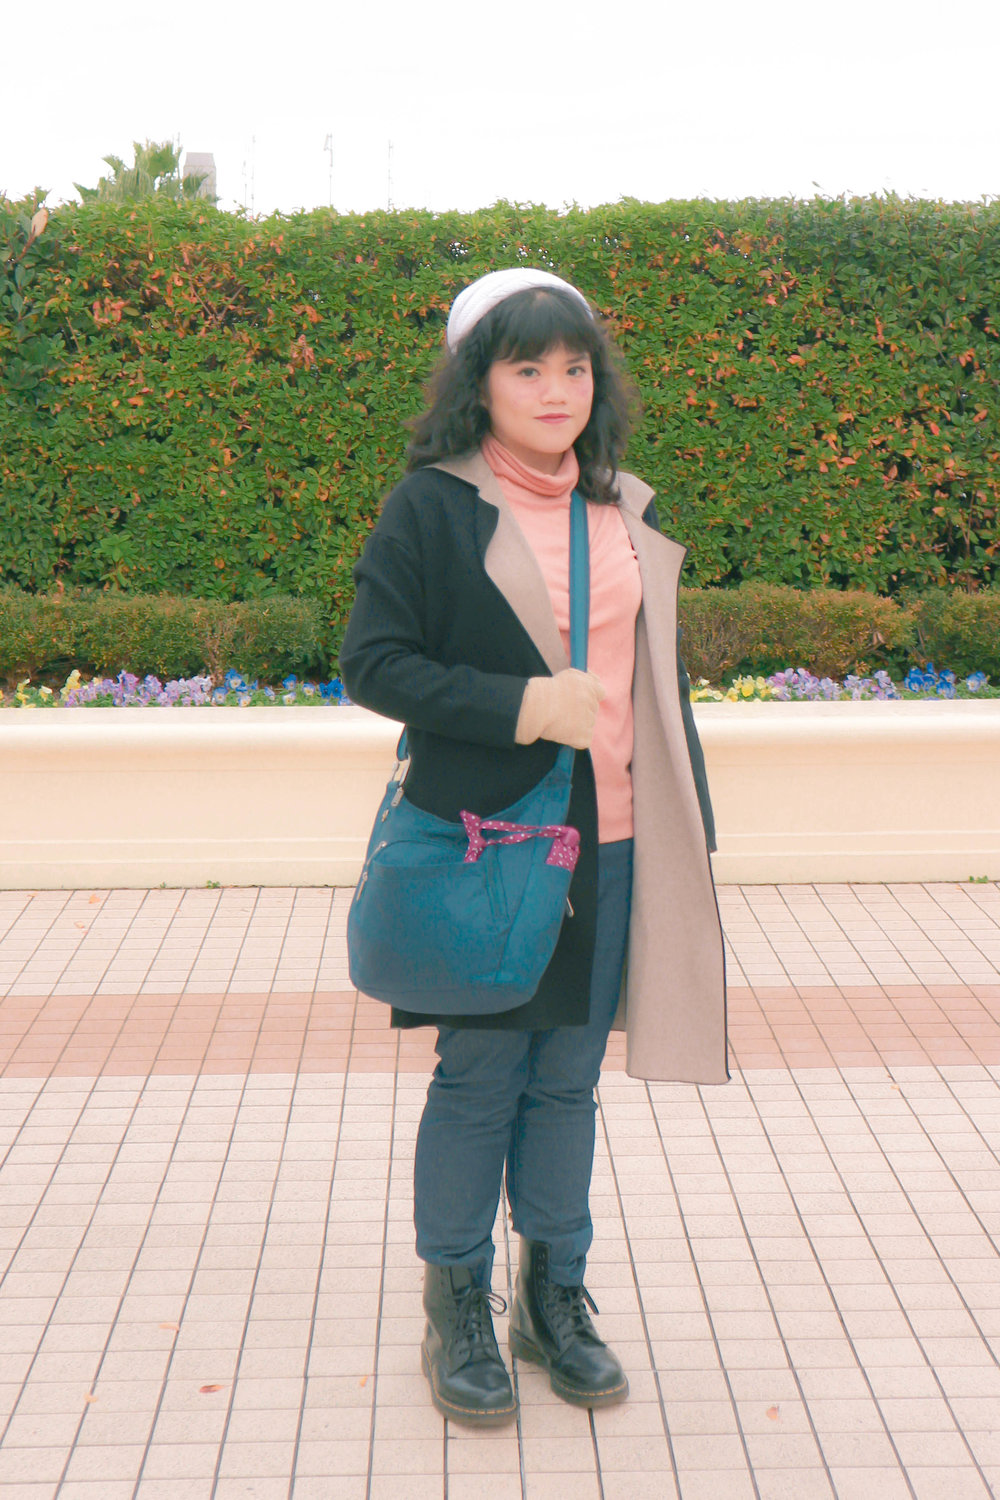 japan, osaka, kyoto, tokyo, ootd, japan 2016, what i wore, aica duran, travel outfit ideas